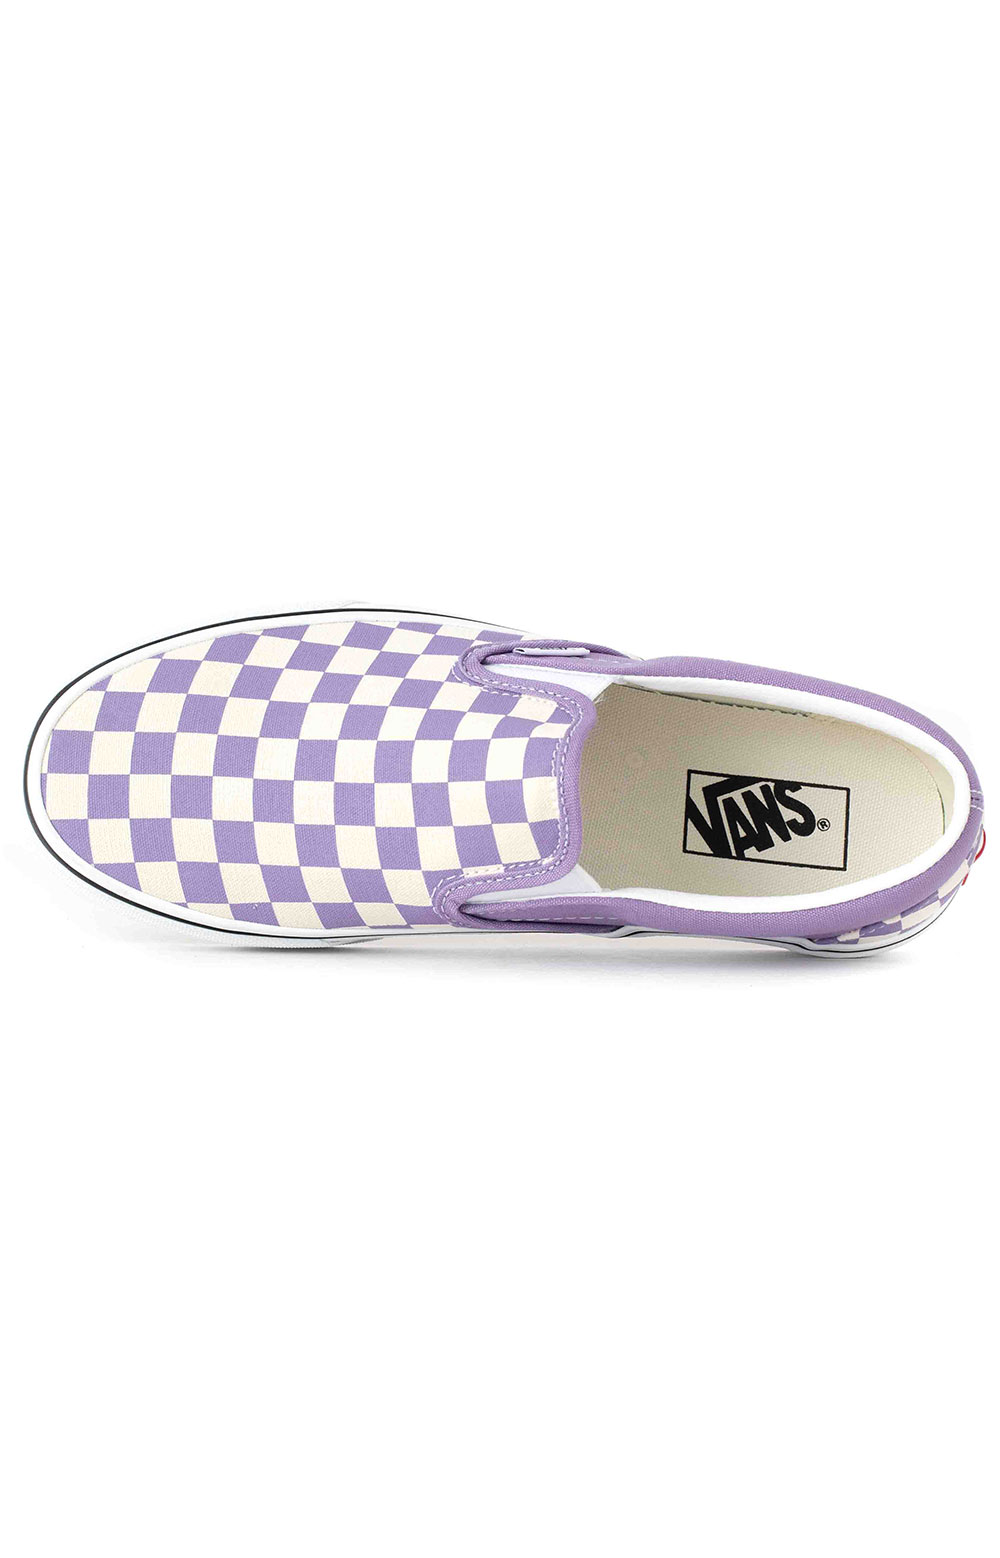 (3TB9HM) Checkerboard Classic Slip-On Shoes - Chalk Violet  2